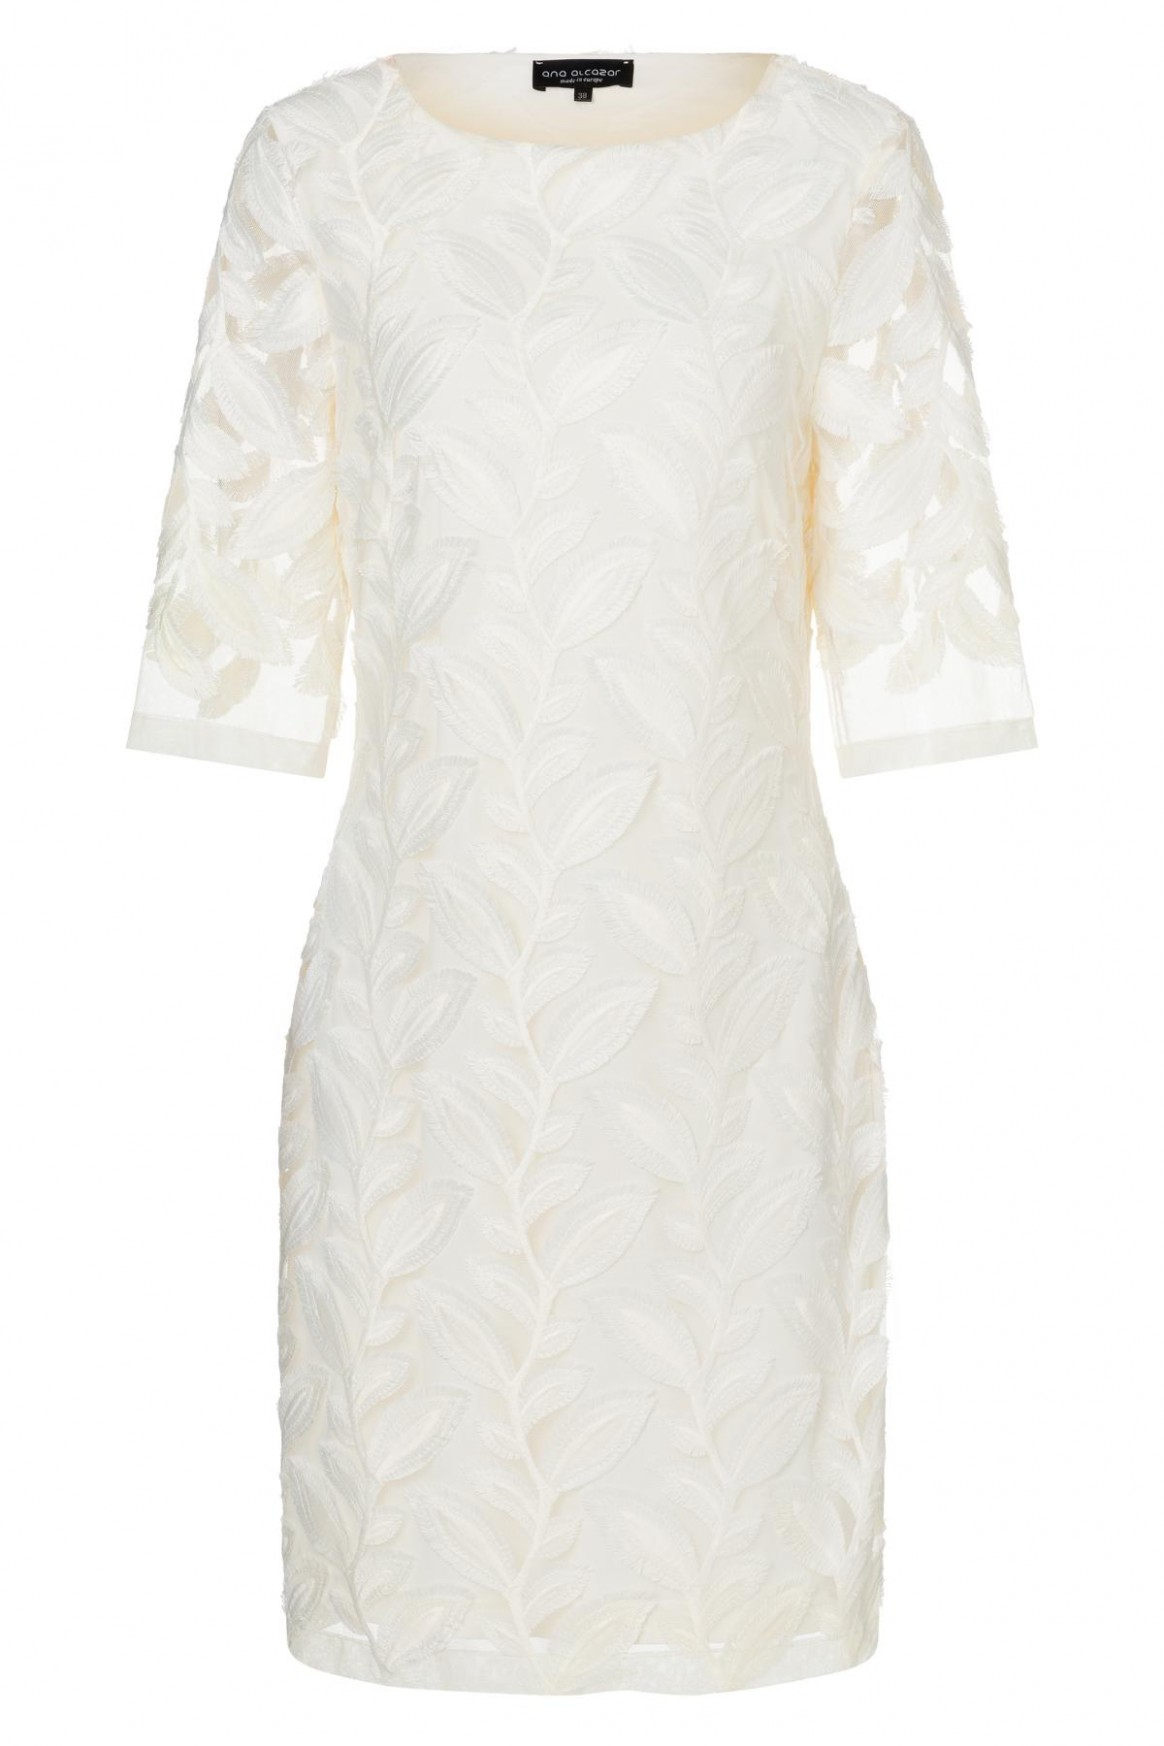 Noble tight lace-dress Zawea in white  Ana Alcazar